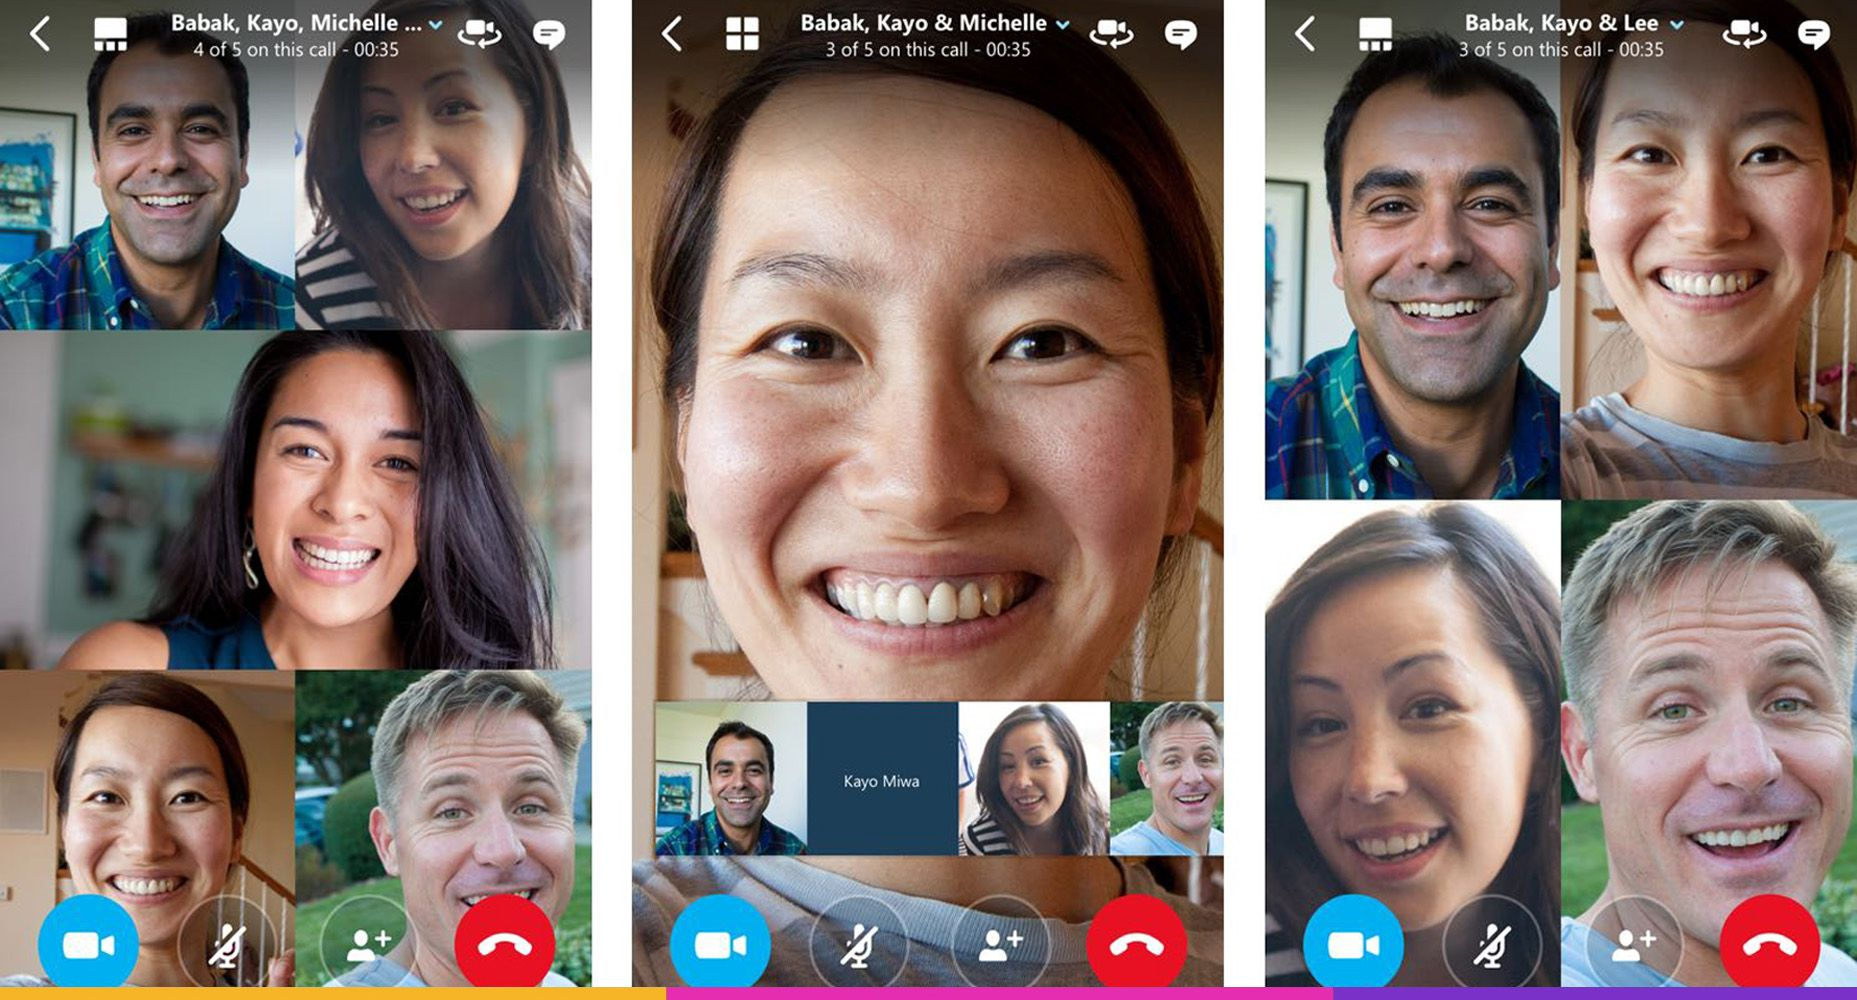 Video-chats become the most rapid-growing category on App Store and Google Play